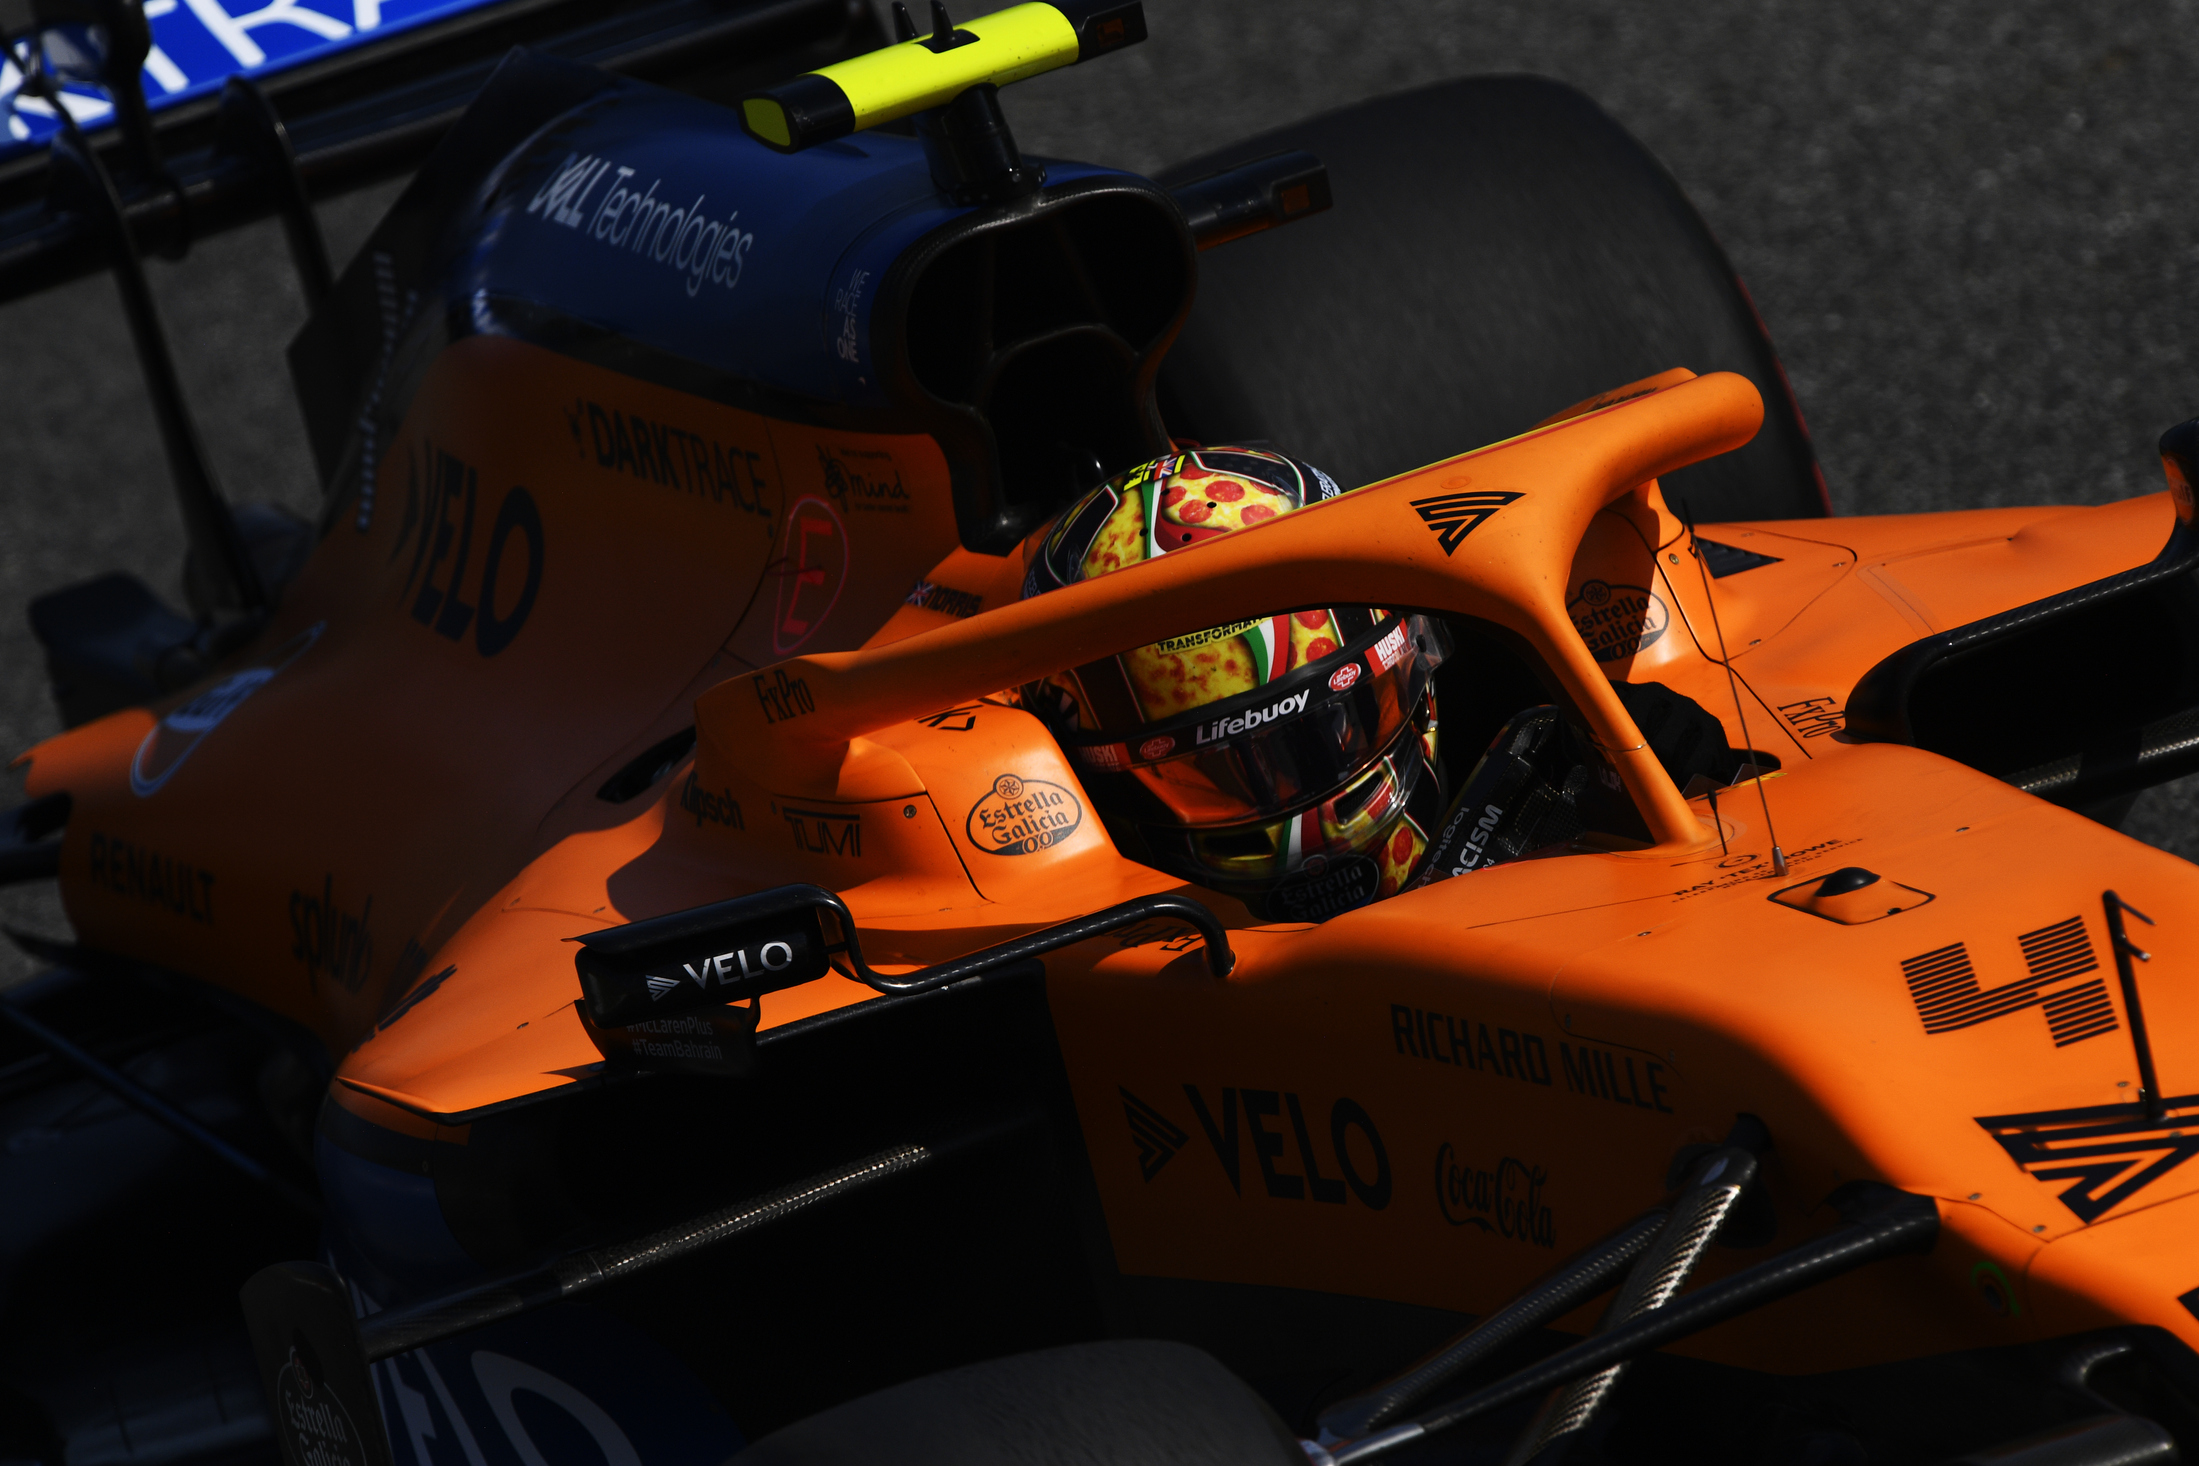 """"""" My worst Friday in a long time, """" says McLaren driver Lando Norris, despite his second experience in the Italian Grand Prix."""